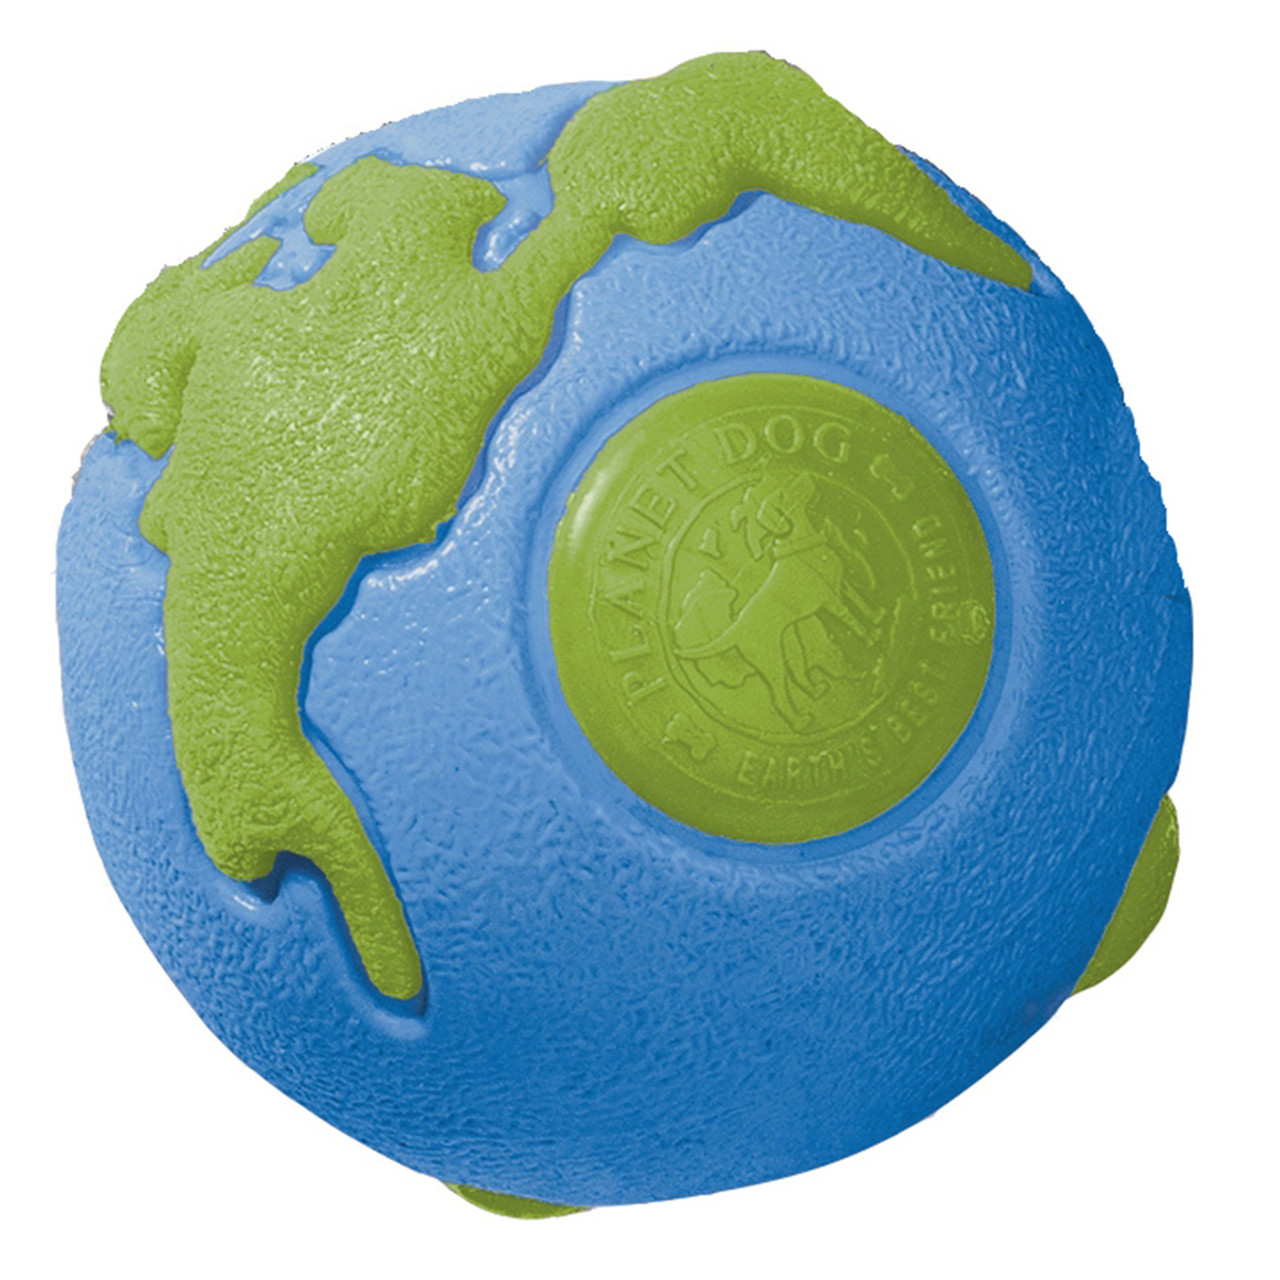 Planet Dog Orbee Tuff Planet Ball Dog Toy